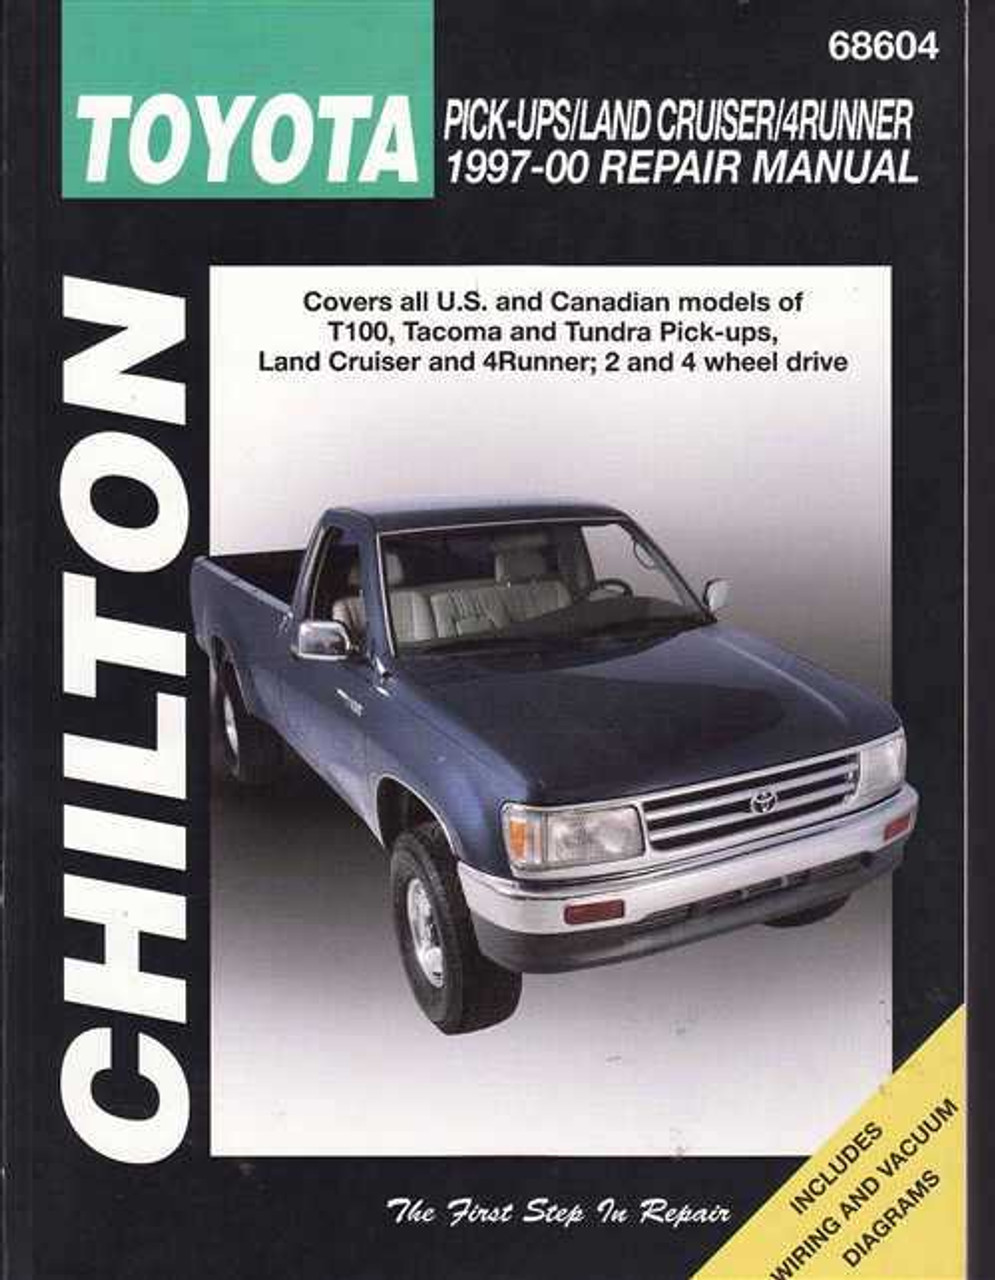 toyota pick ups land cruiser 4runner 1997 2000 workshop manual rh automotobookshop com au Haynes Manual GMC Jimmy 1995-2001 Haynes Manual GMC Jimmy 1995-2001